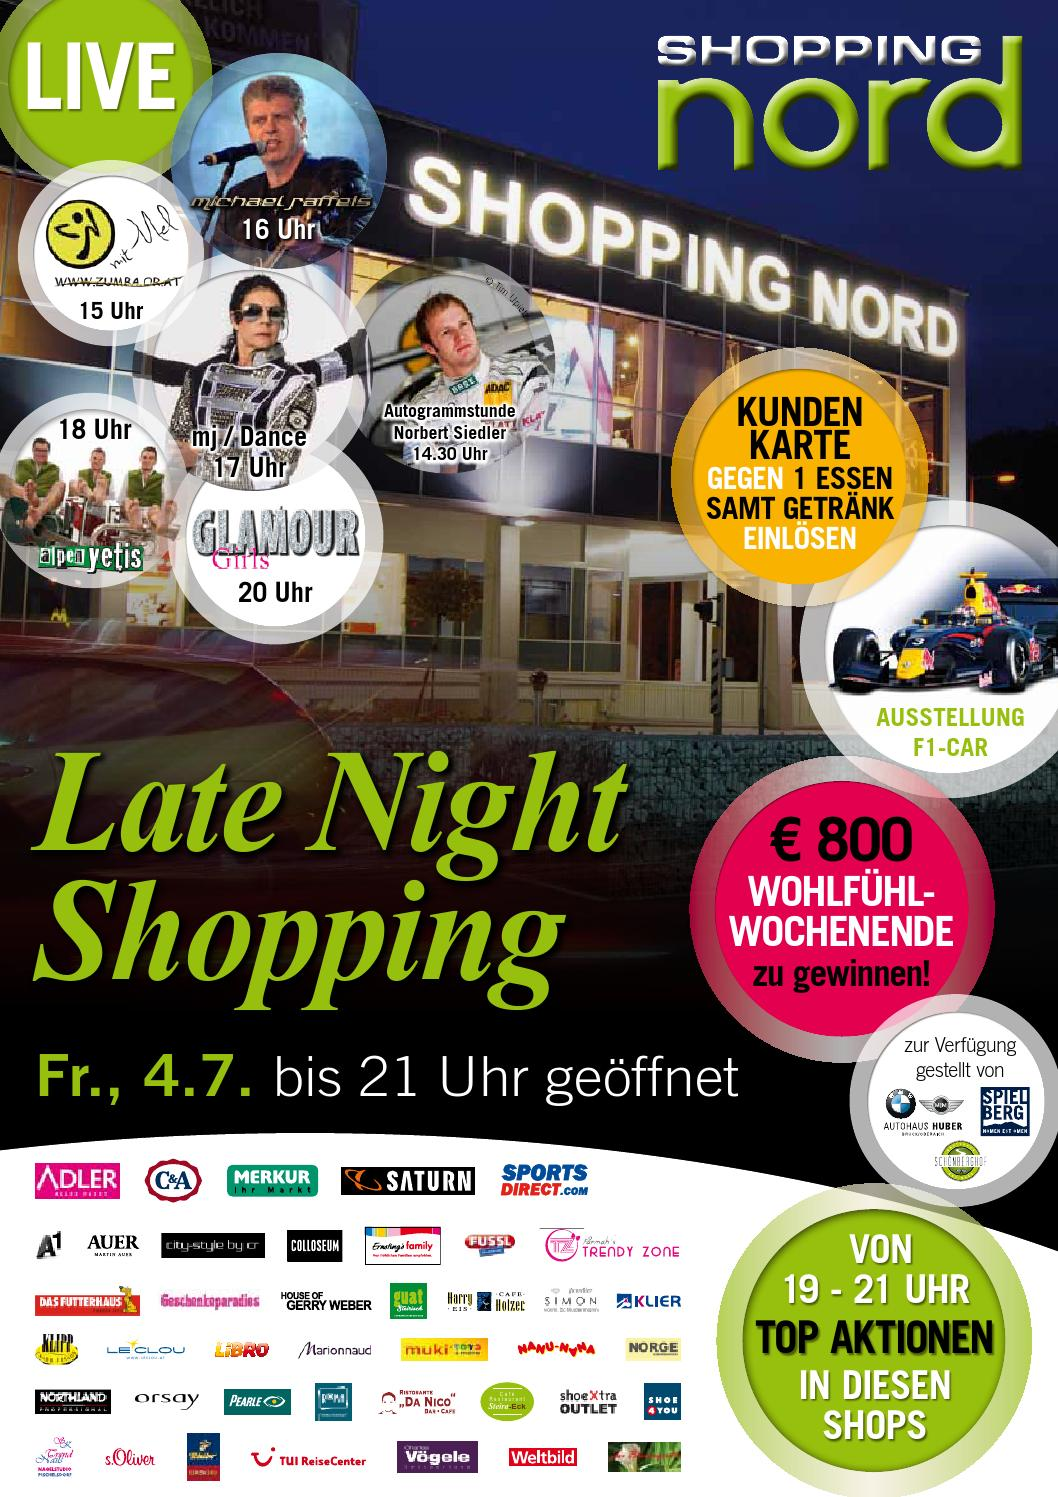 shopping nord online magazin 03 mit allen aktionen by shopping nord issuu. Black Bedroom Furniture Sets. Home Design Ideas